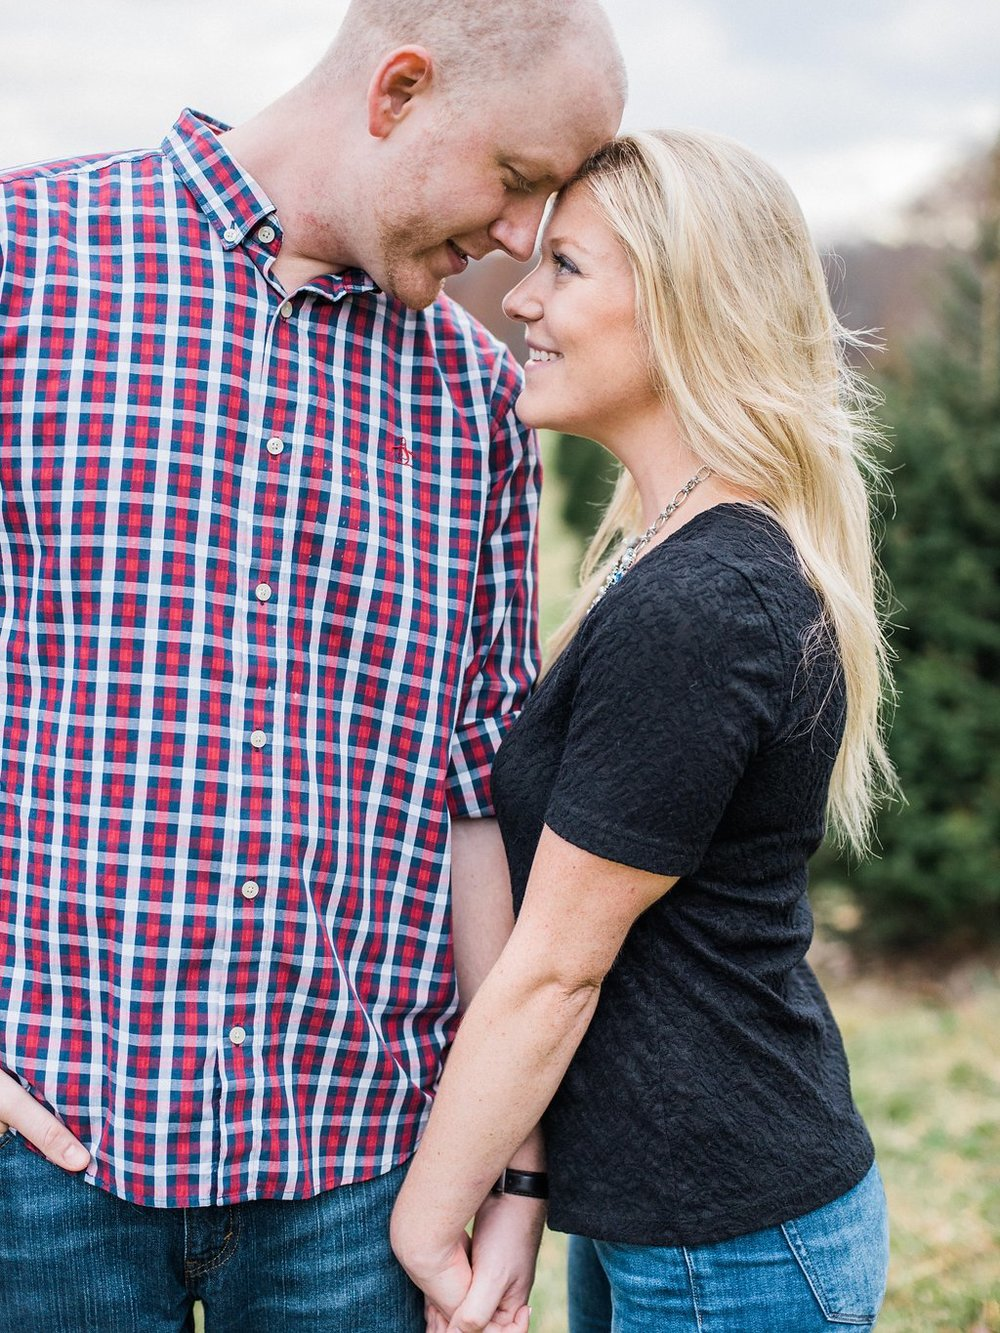 christmas tree farm engagement session washington dc fine art wedding photographer lissa ryan photography